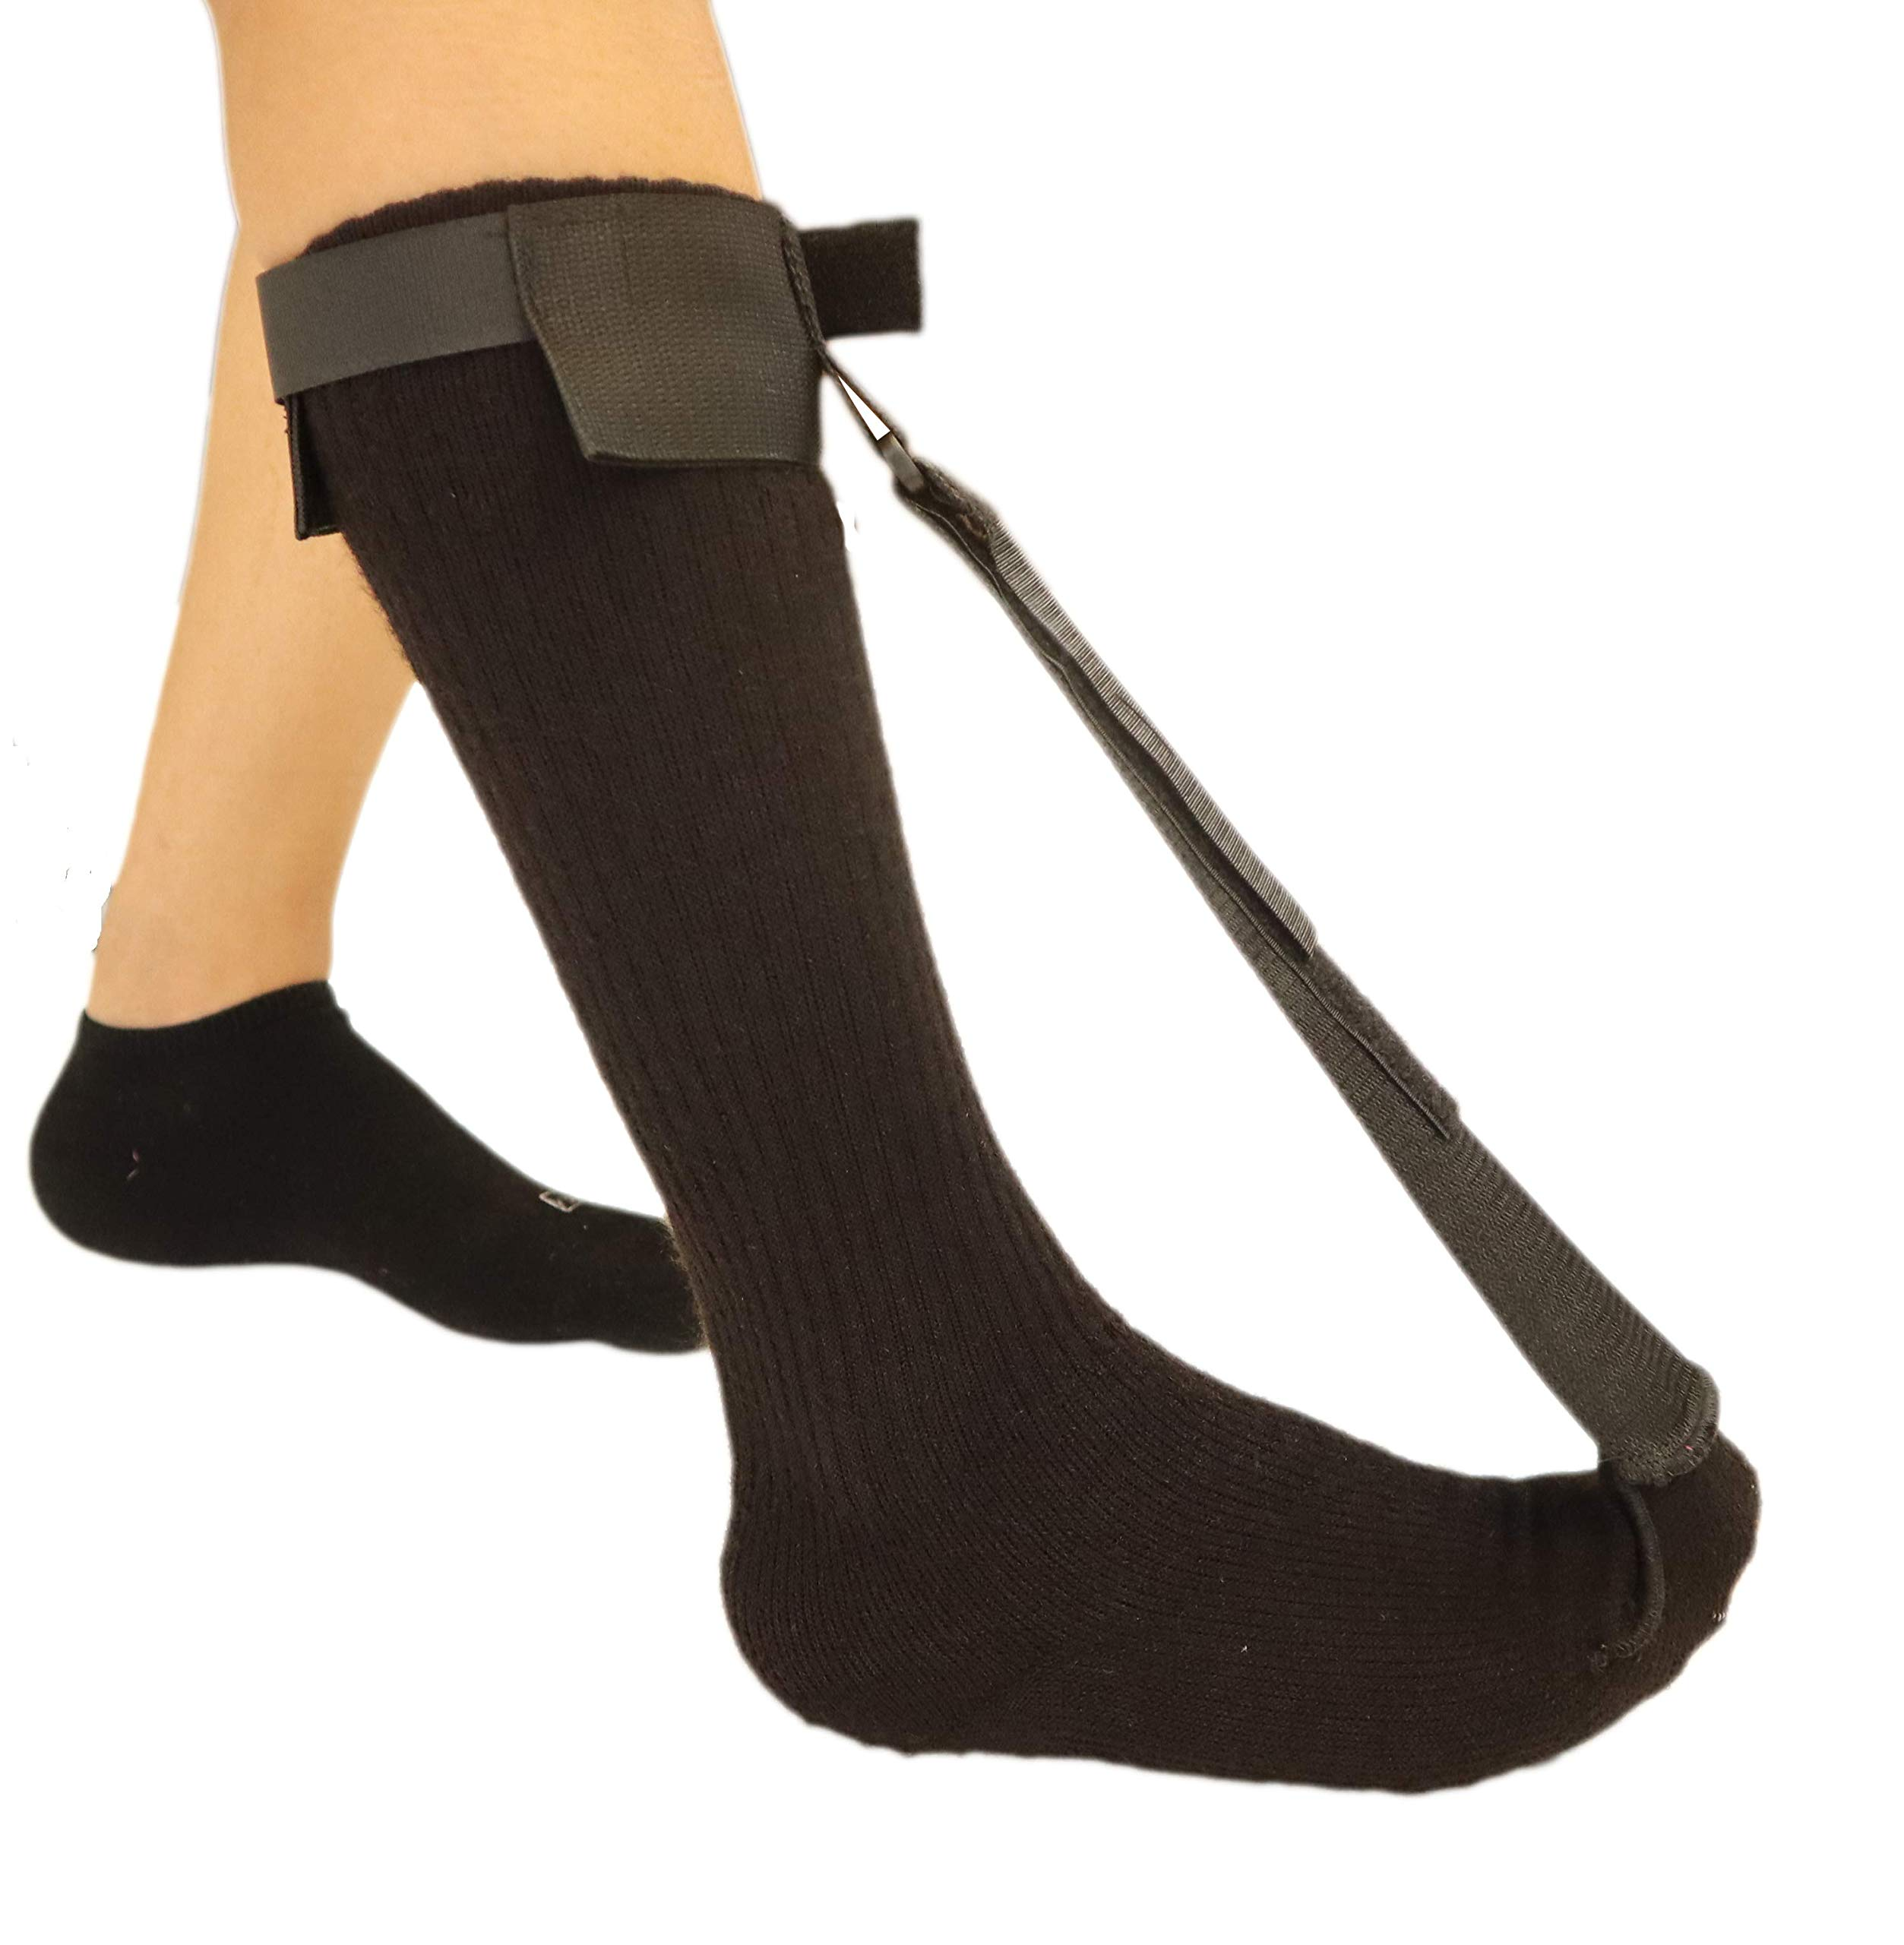 Plantar Fasciitis Stretch Night Sock - for Pain Relief from Plantar Fasciitis and Achilles Tendonitis - Black - XL by MARS WELLNESS